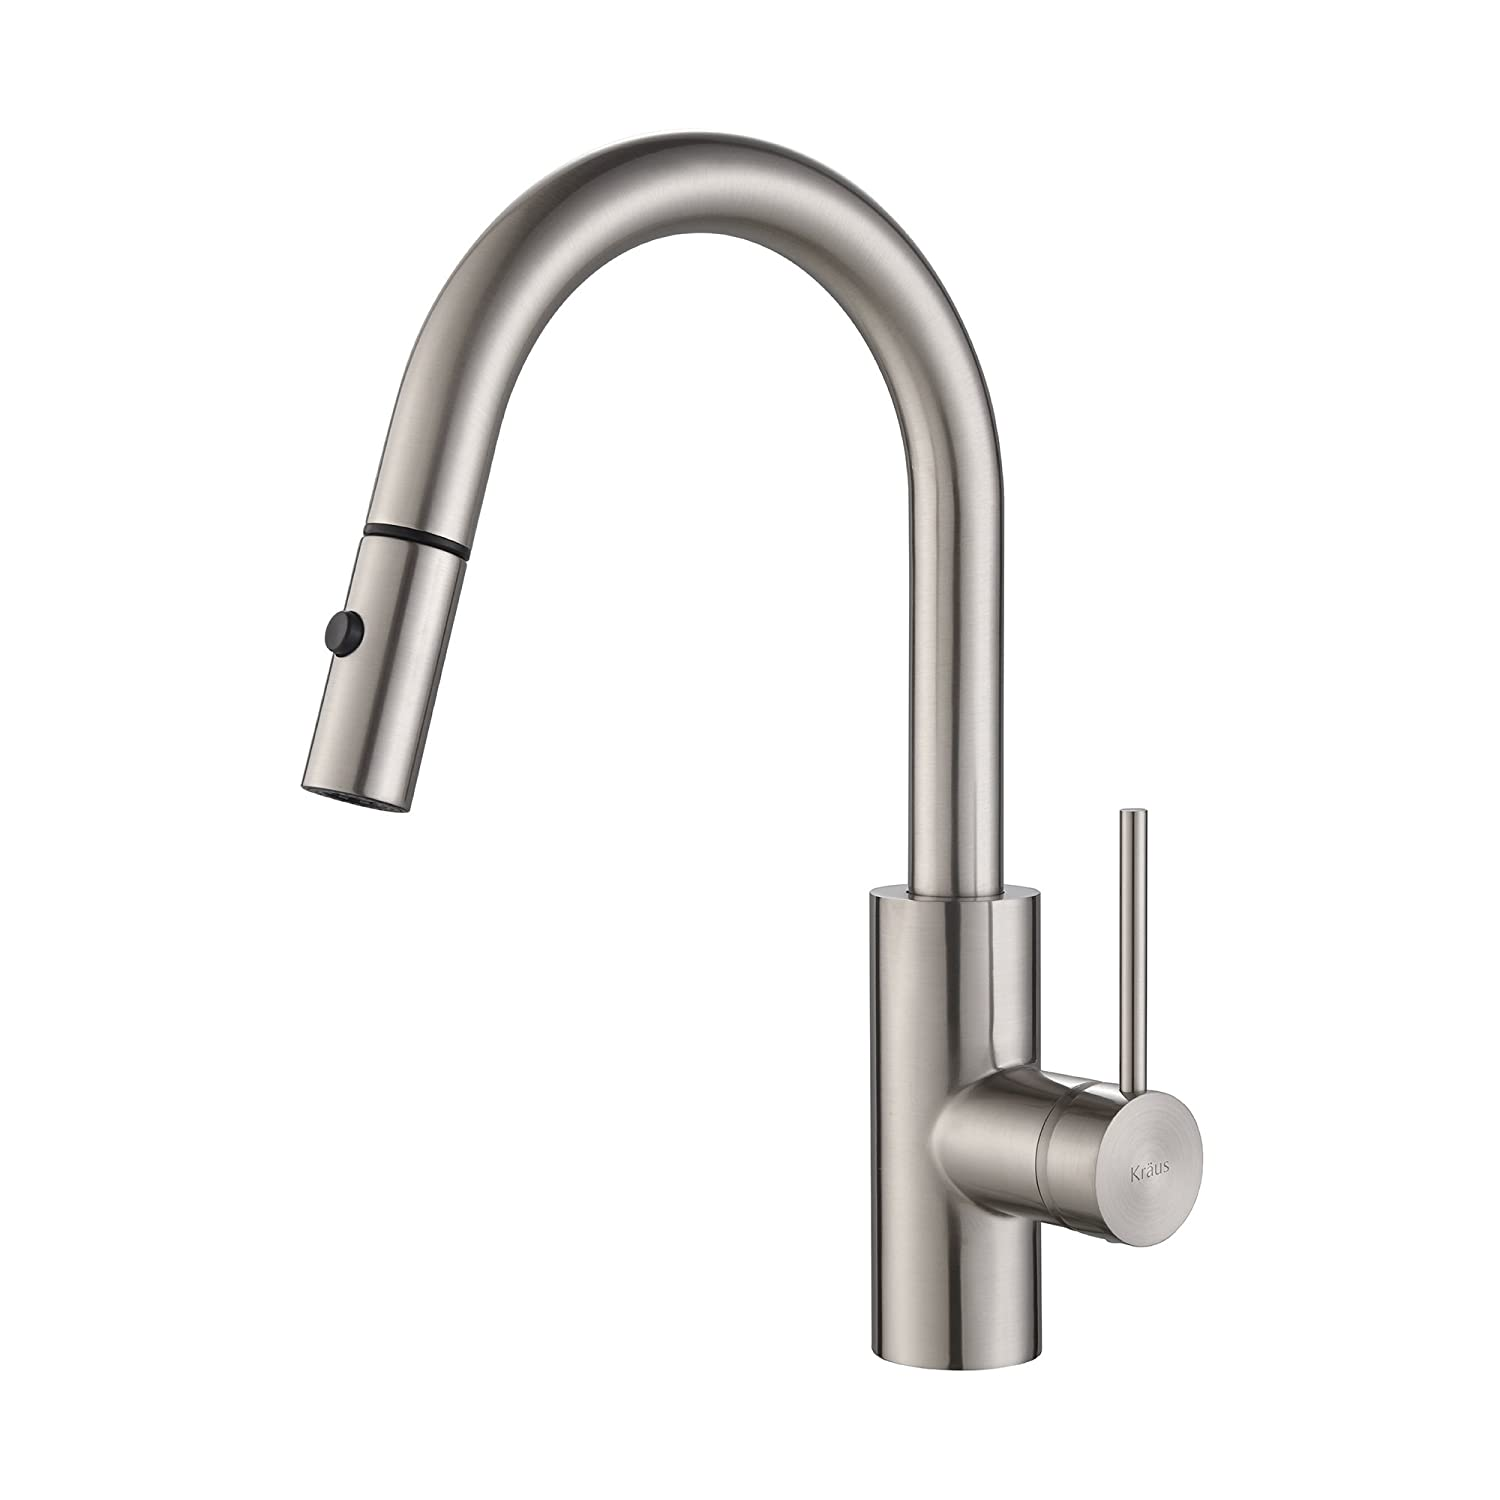 Kraus KPF-2620SS Modern Mateo Single Lever Pull Down Kitchen Faucet, Stainless Steel